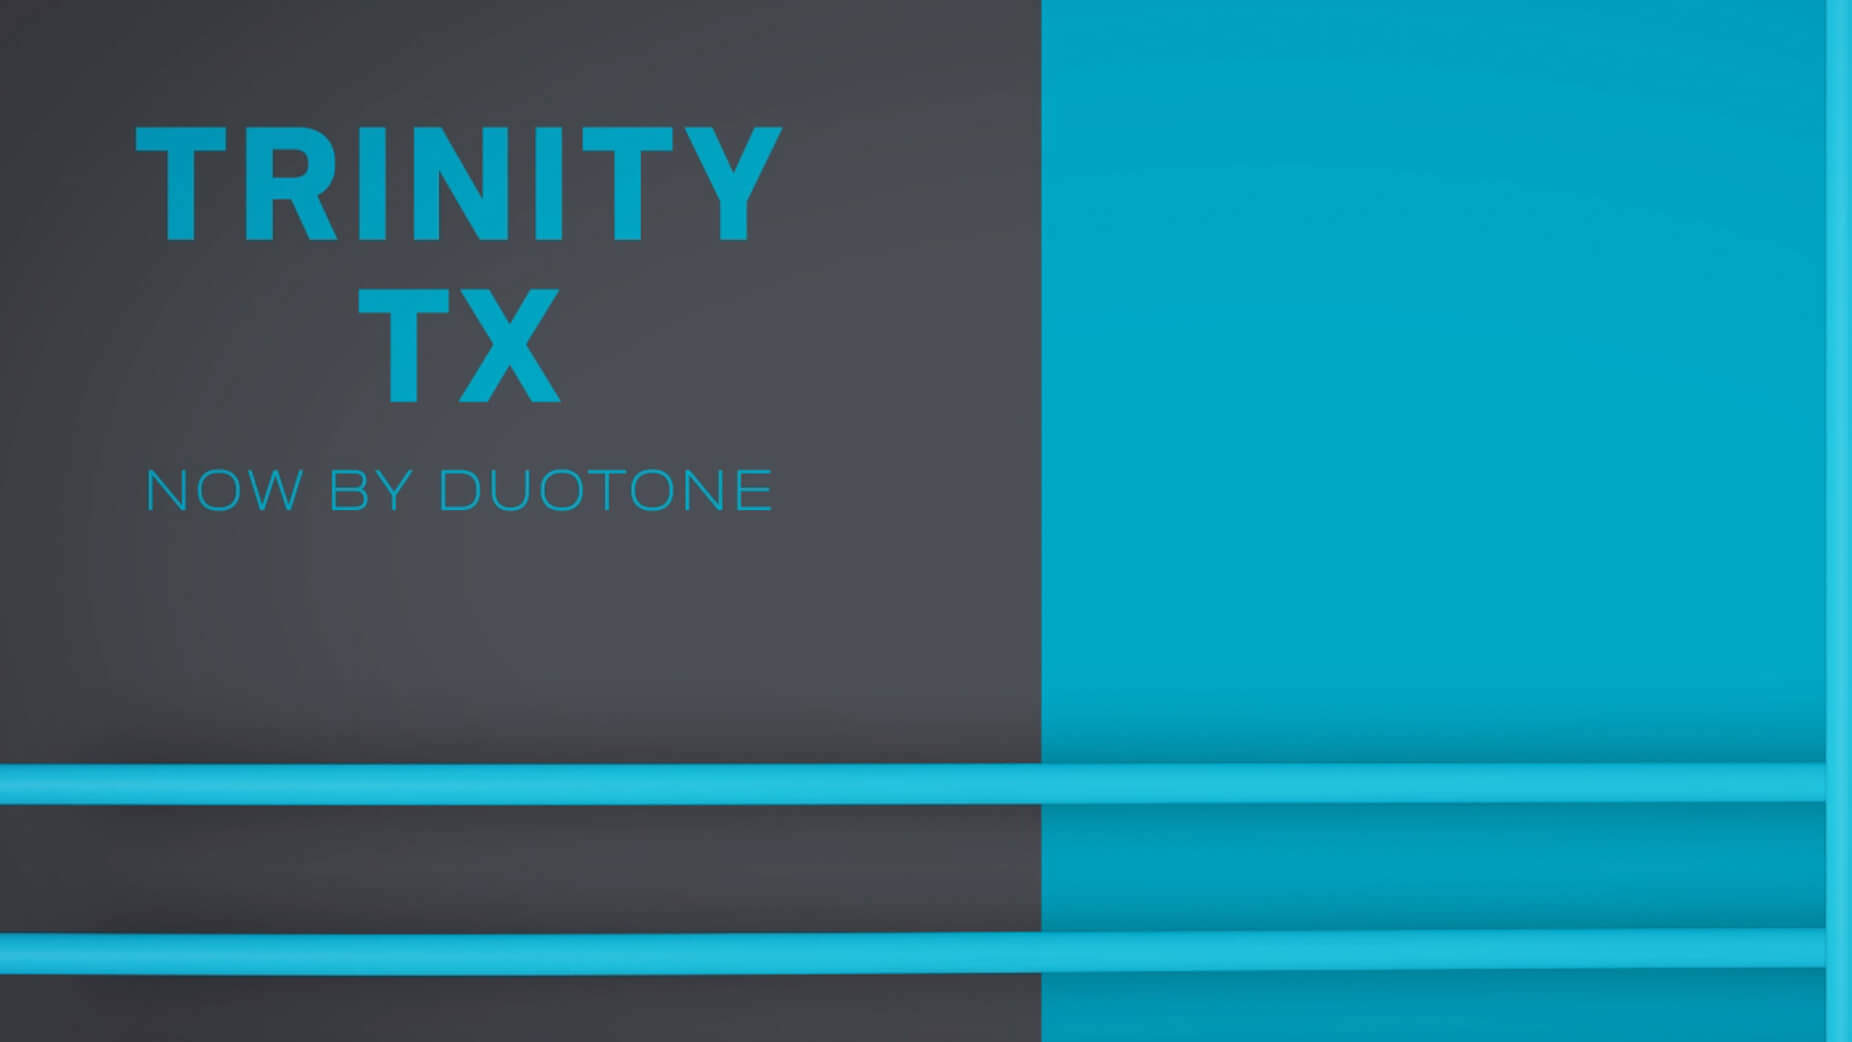 Duotone Trinity TX Video Overview 01